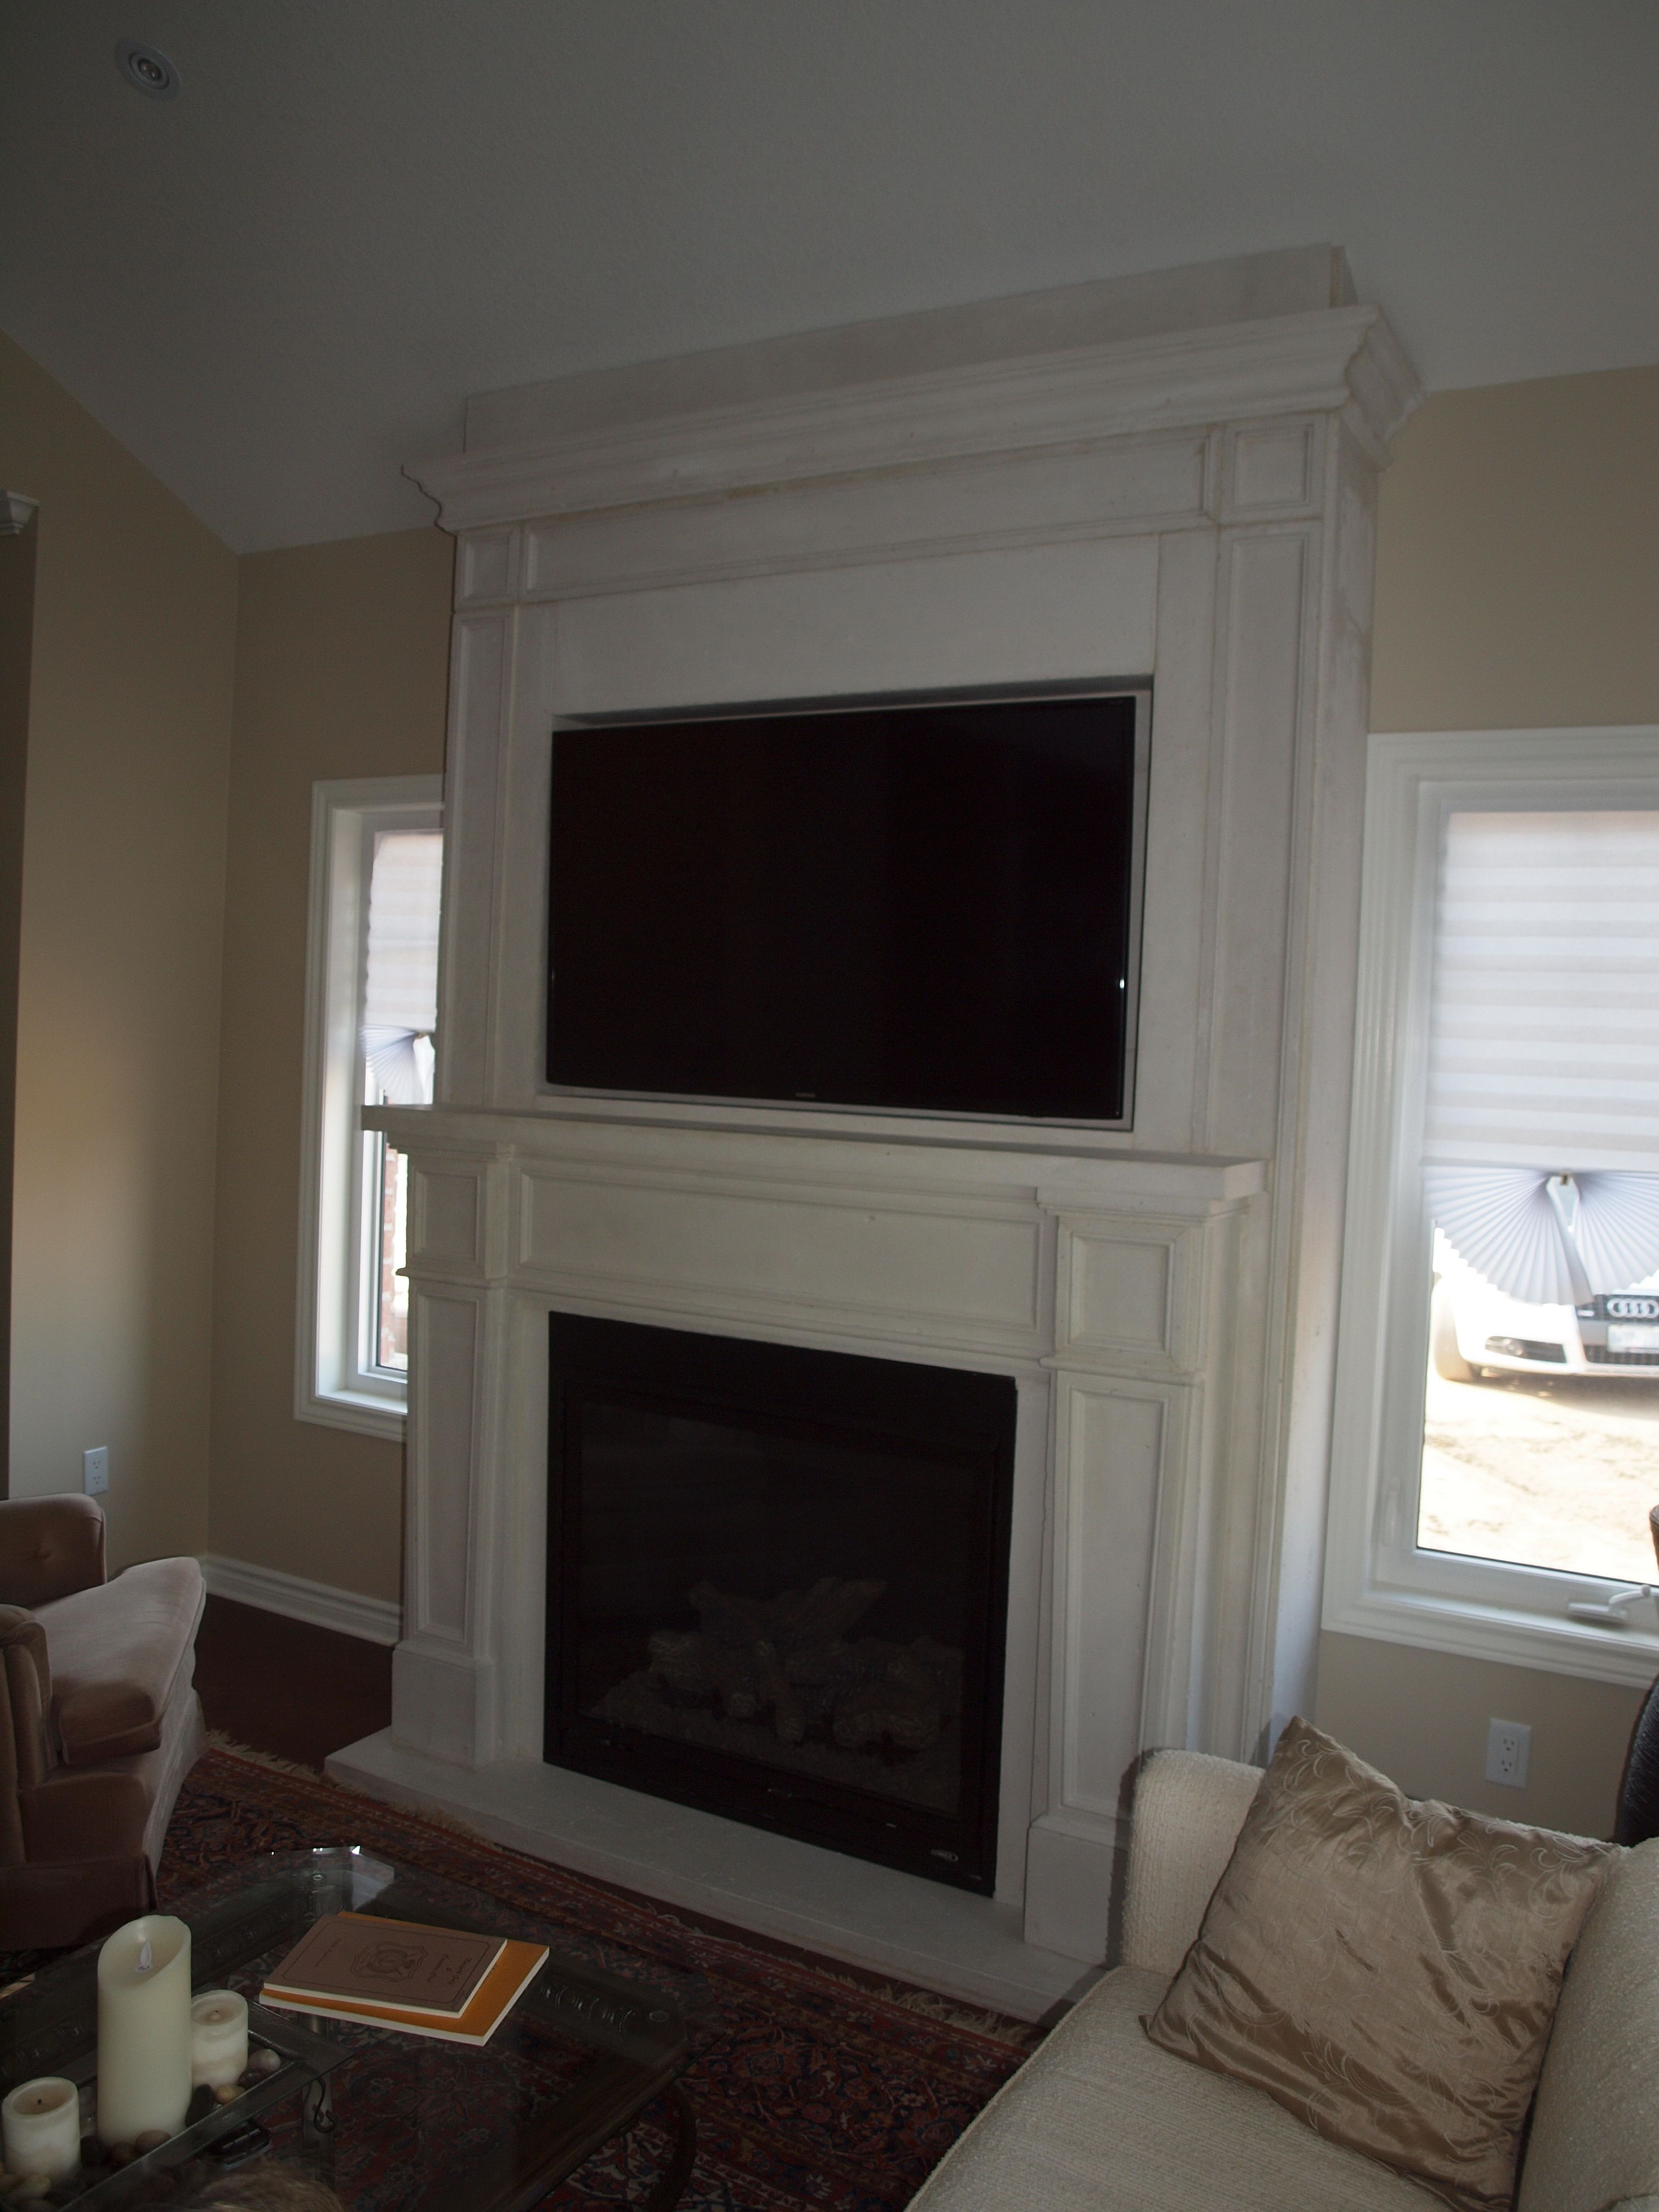 A lennox gas fireplace cast stone mantel and over mantel